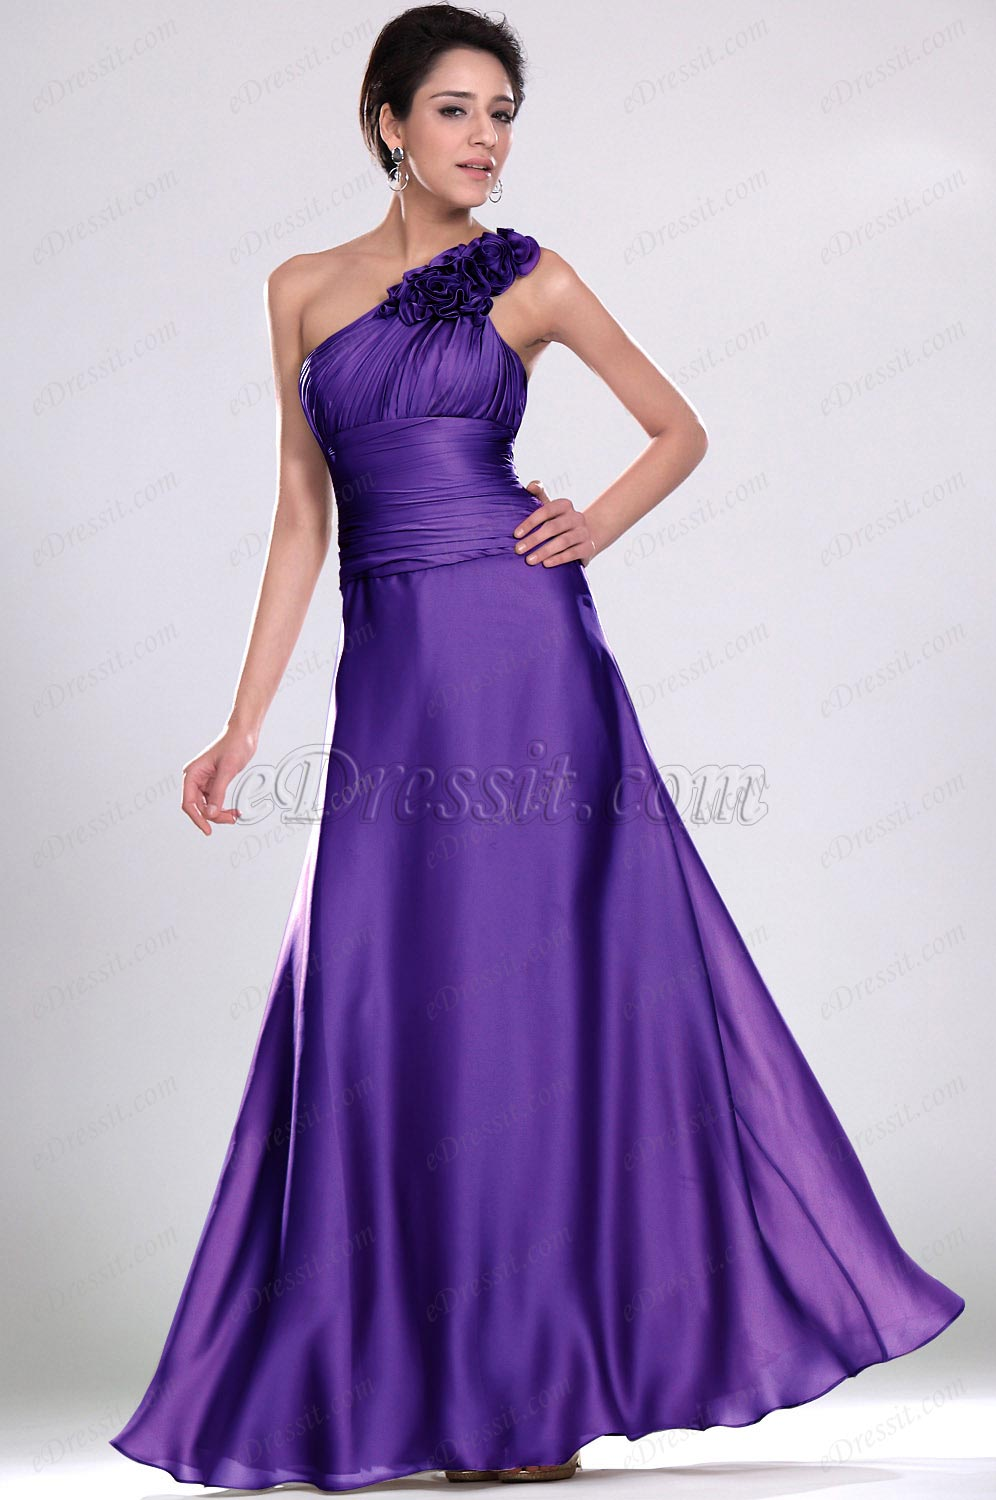 Clearance Sale! eDressit Purple Evening Dress--Size UK8 (00118408b)